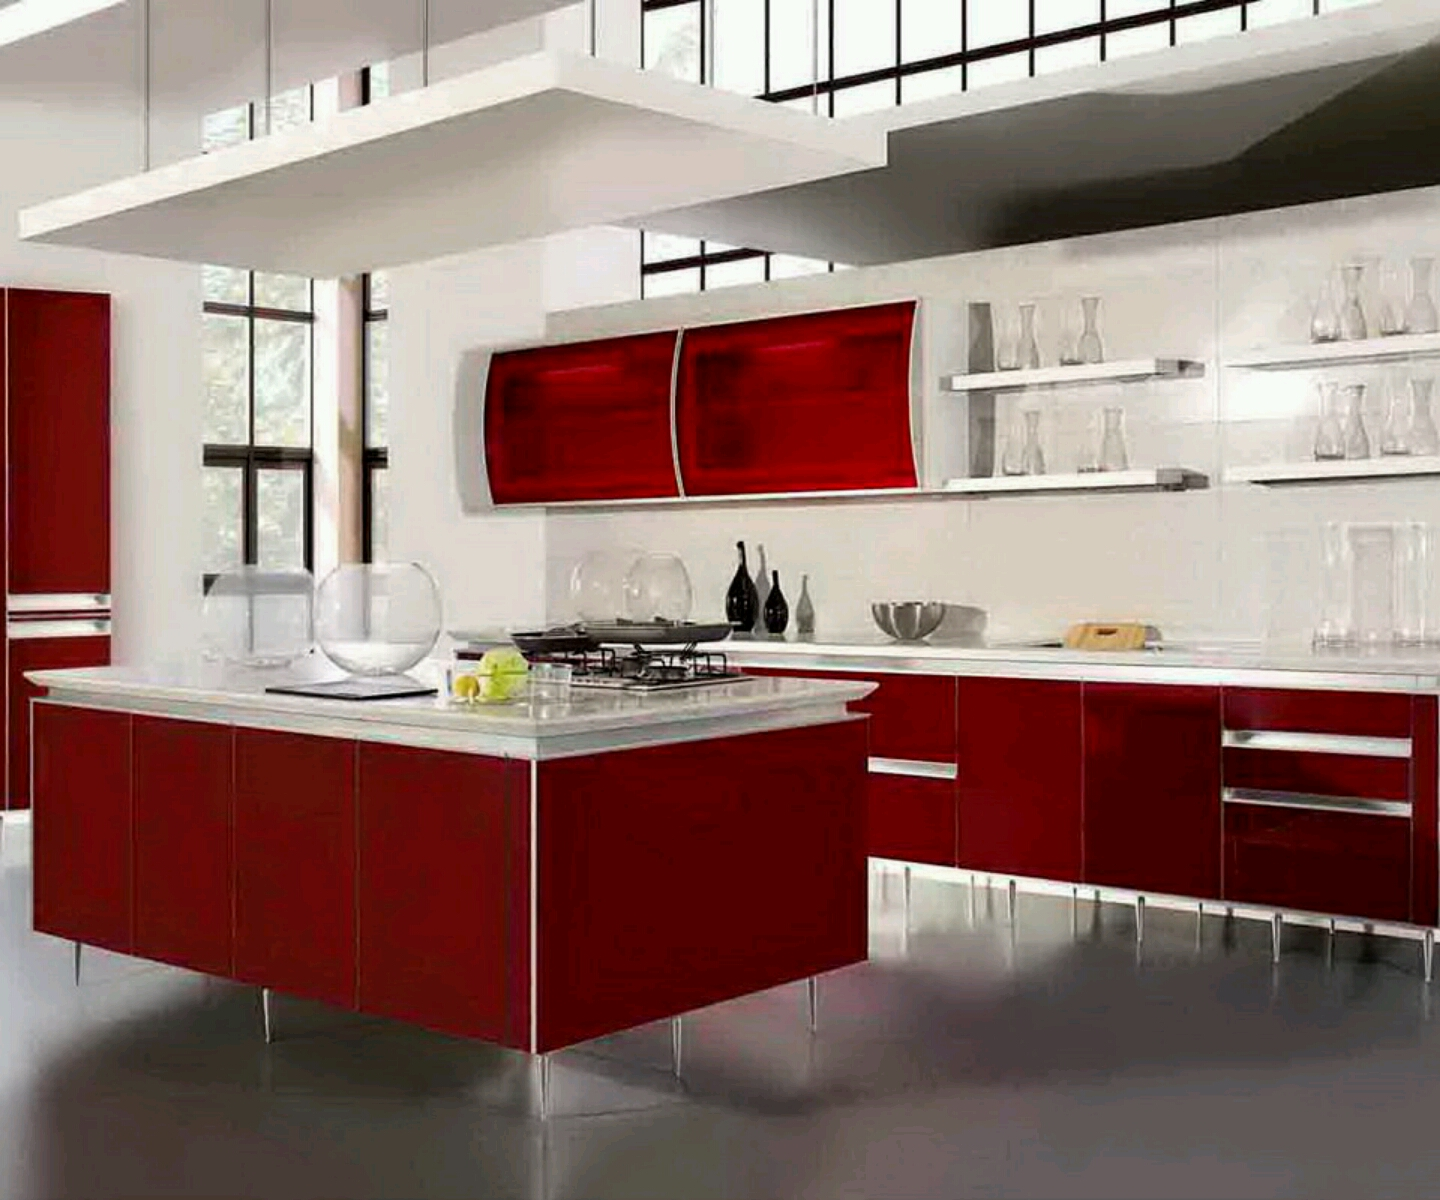 Remarkable Modern Kitchen Design 1440 x 1200 · 890 kB · jpeg